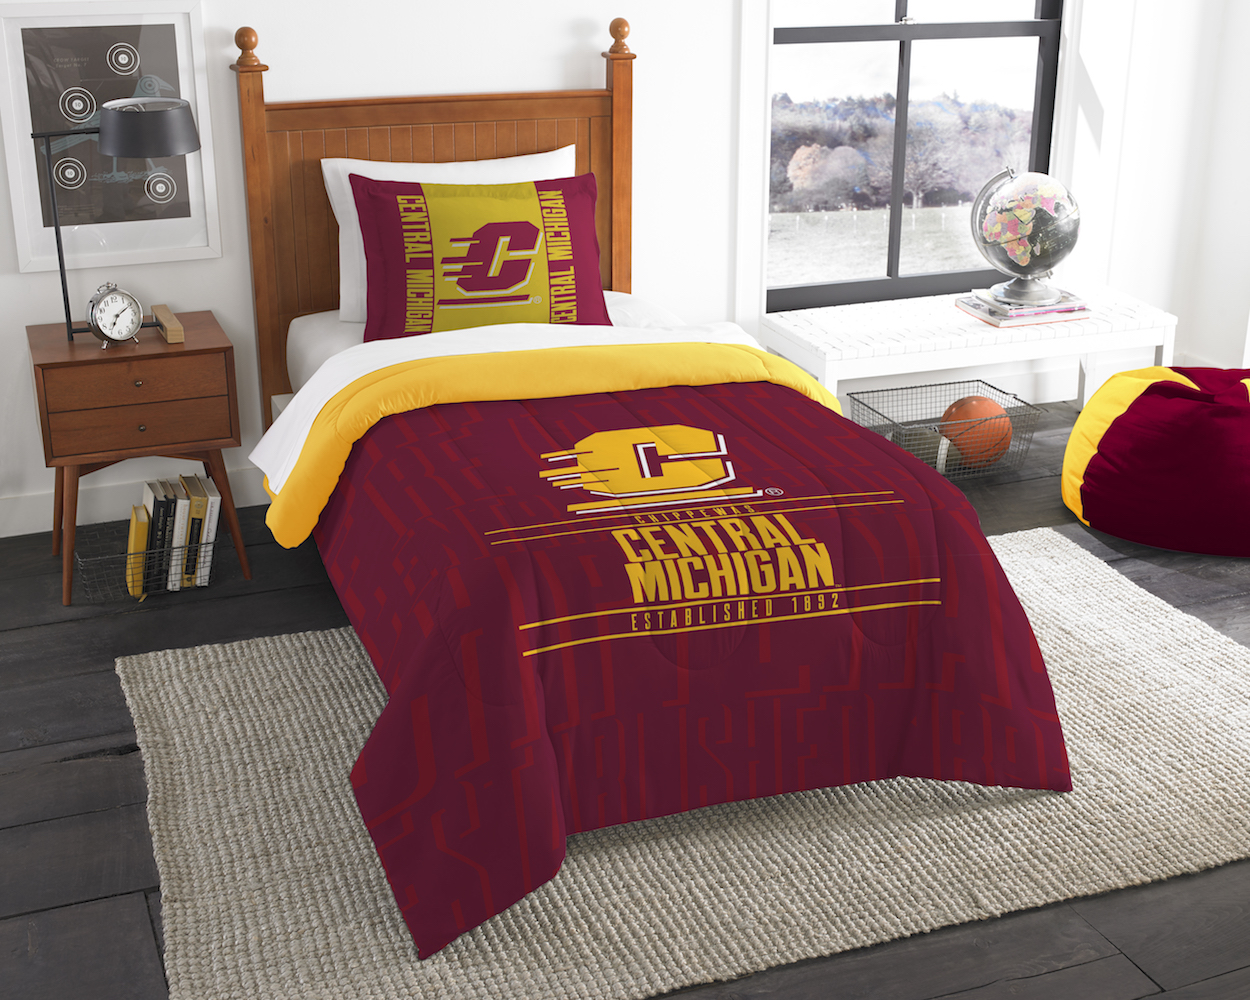 Central Michigan Chippewas Twin Comforter Set with Sham